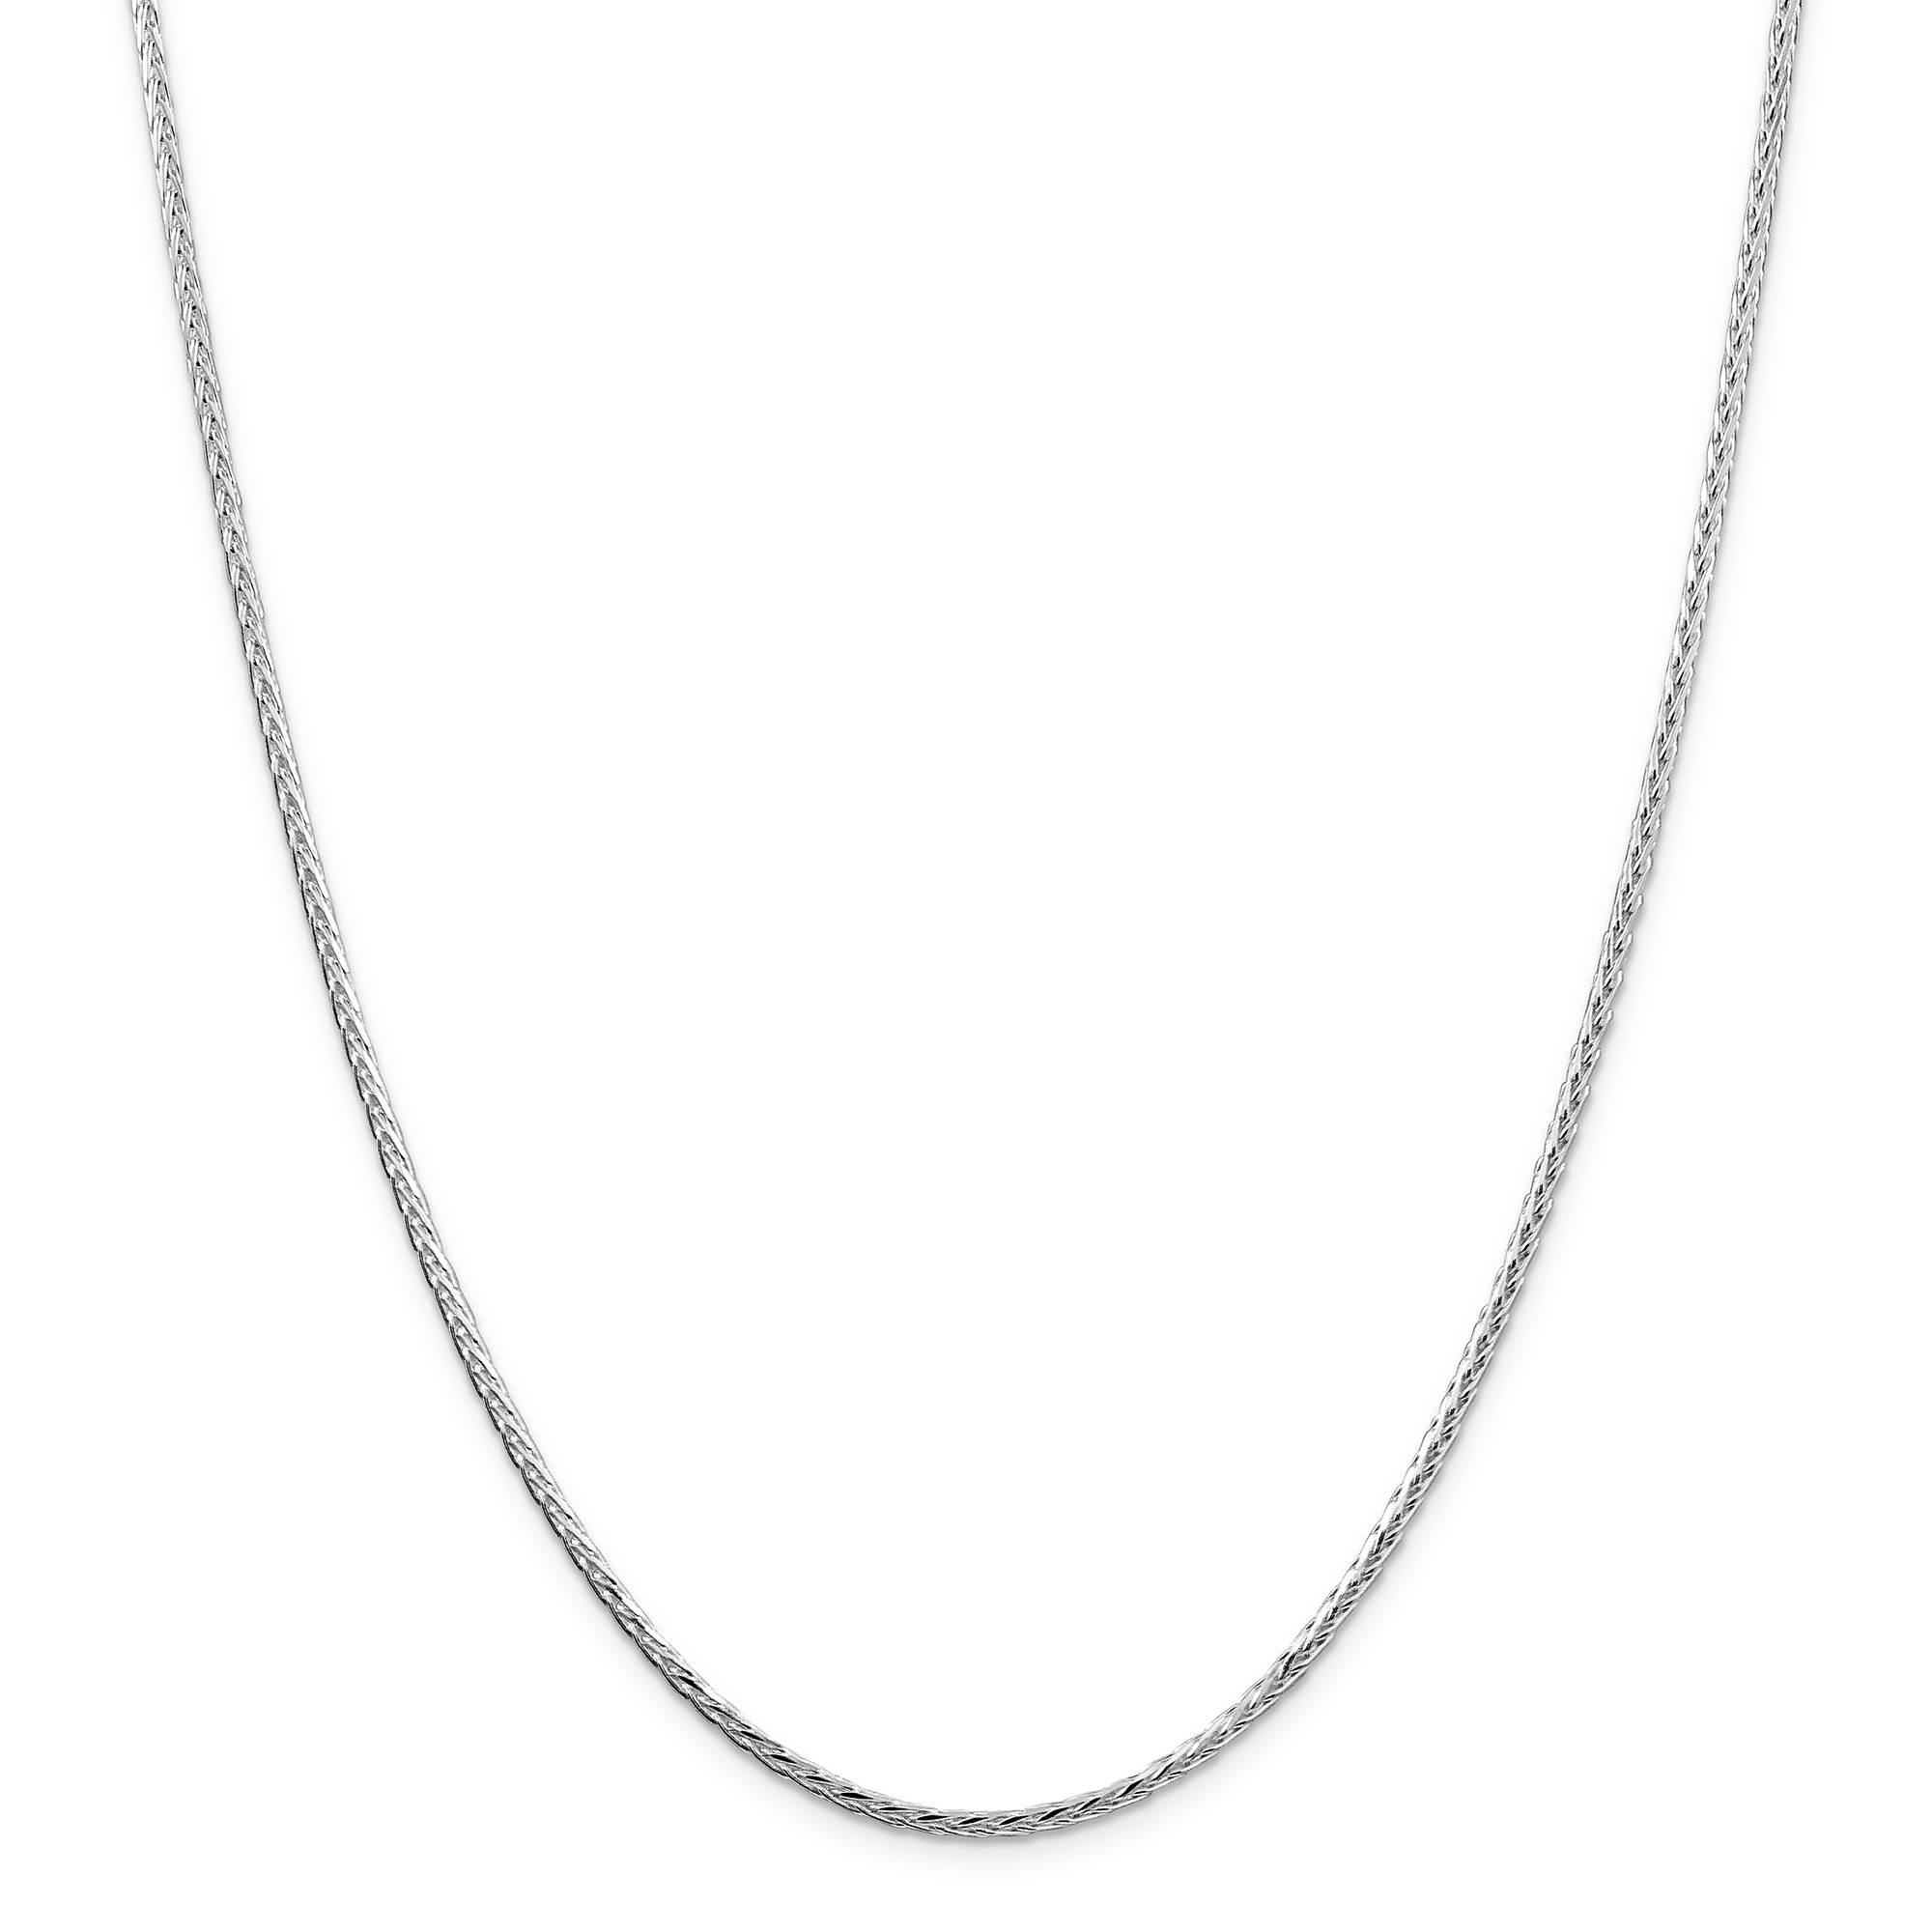 925 Sterling Silver 2.5mm Spiga Chain Necklace 20 Inch Pendant Charm Wheat Fine Jewelry Gifts For Women For Her - image 5 de 5